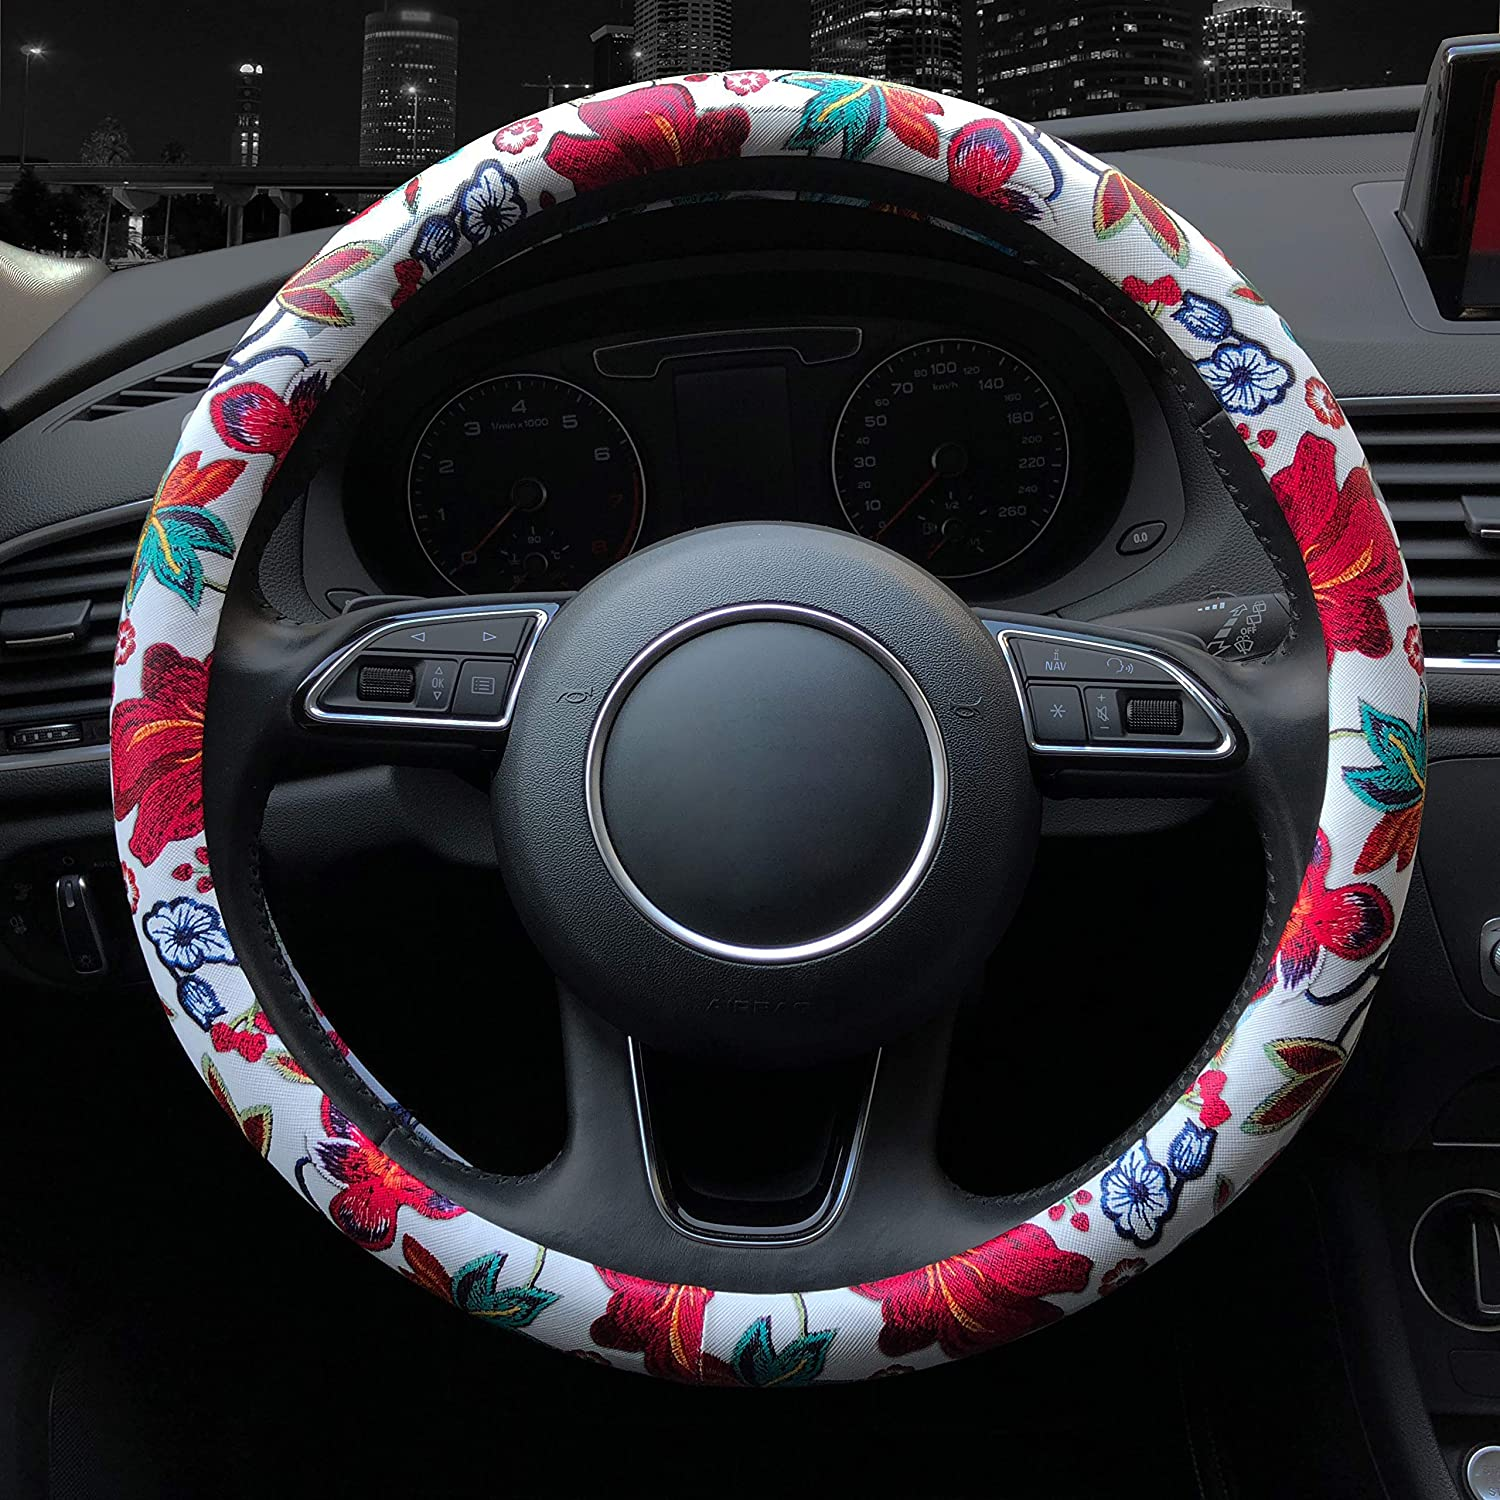 Binsheo Leather Car Floral Automotive Steering Wheel Cover,for Women Girls Ladies,Anti Slip Universal 15 Chinese Style Balck with Pink Flowers